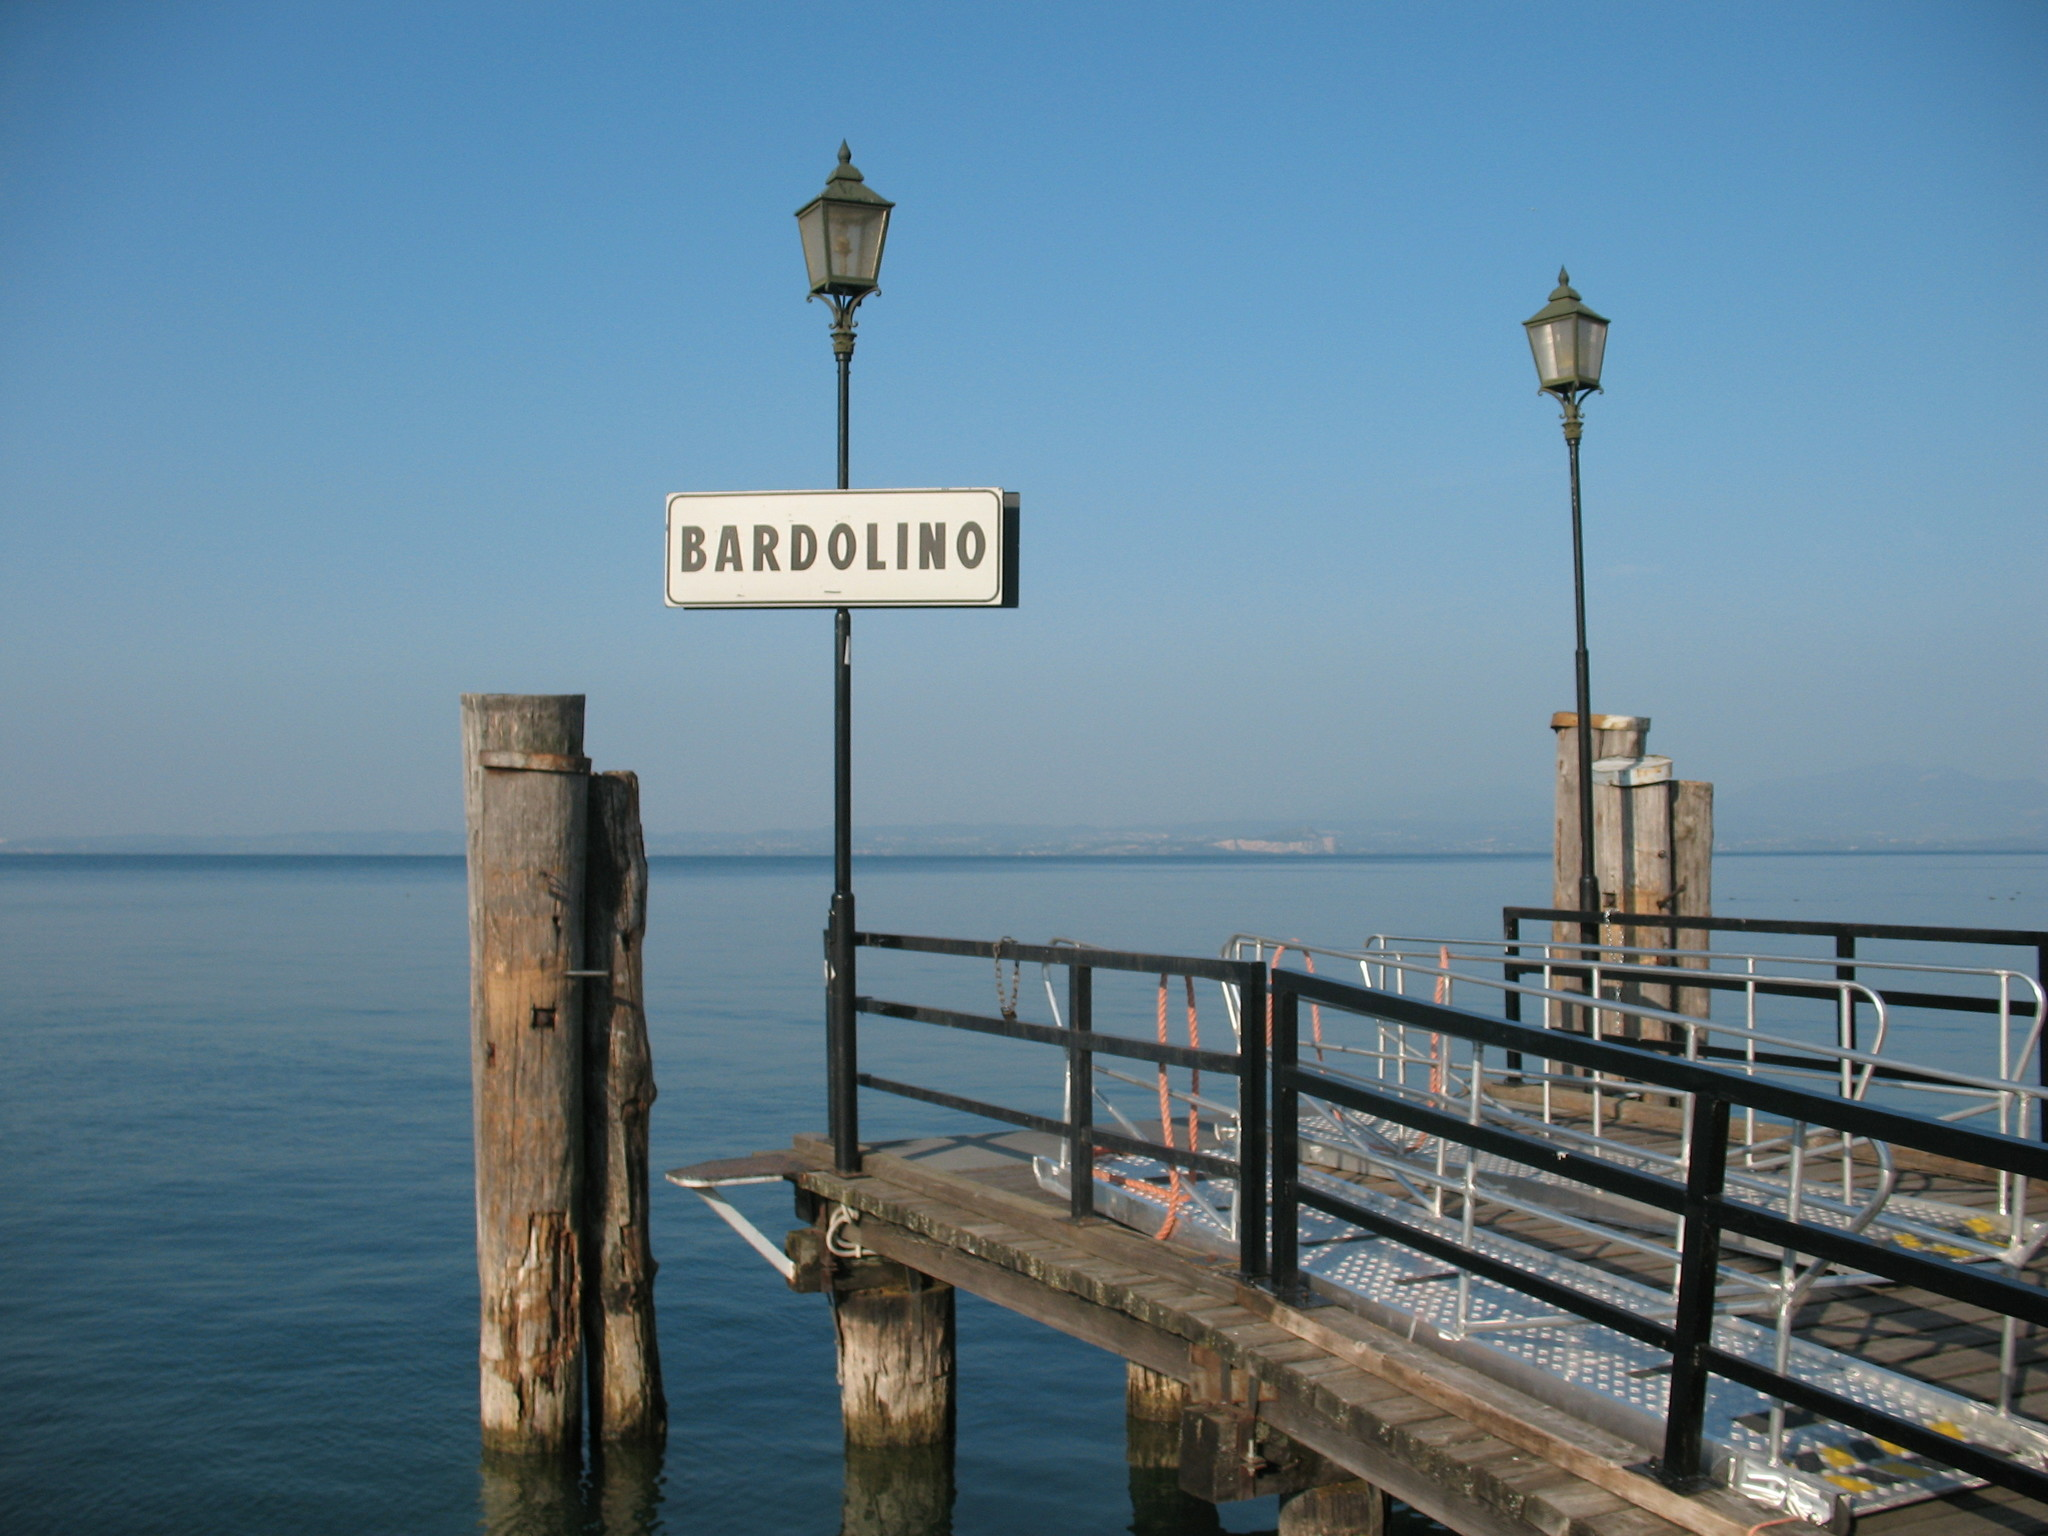 Get to know Bardolino